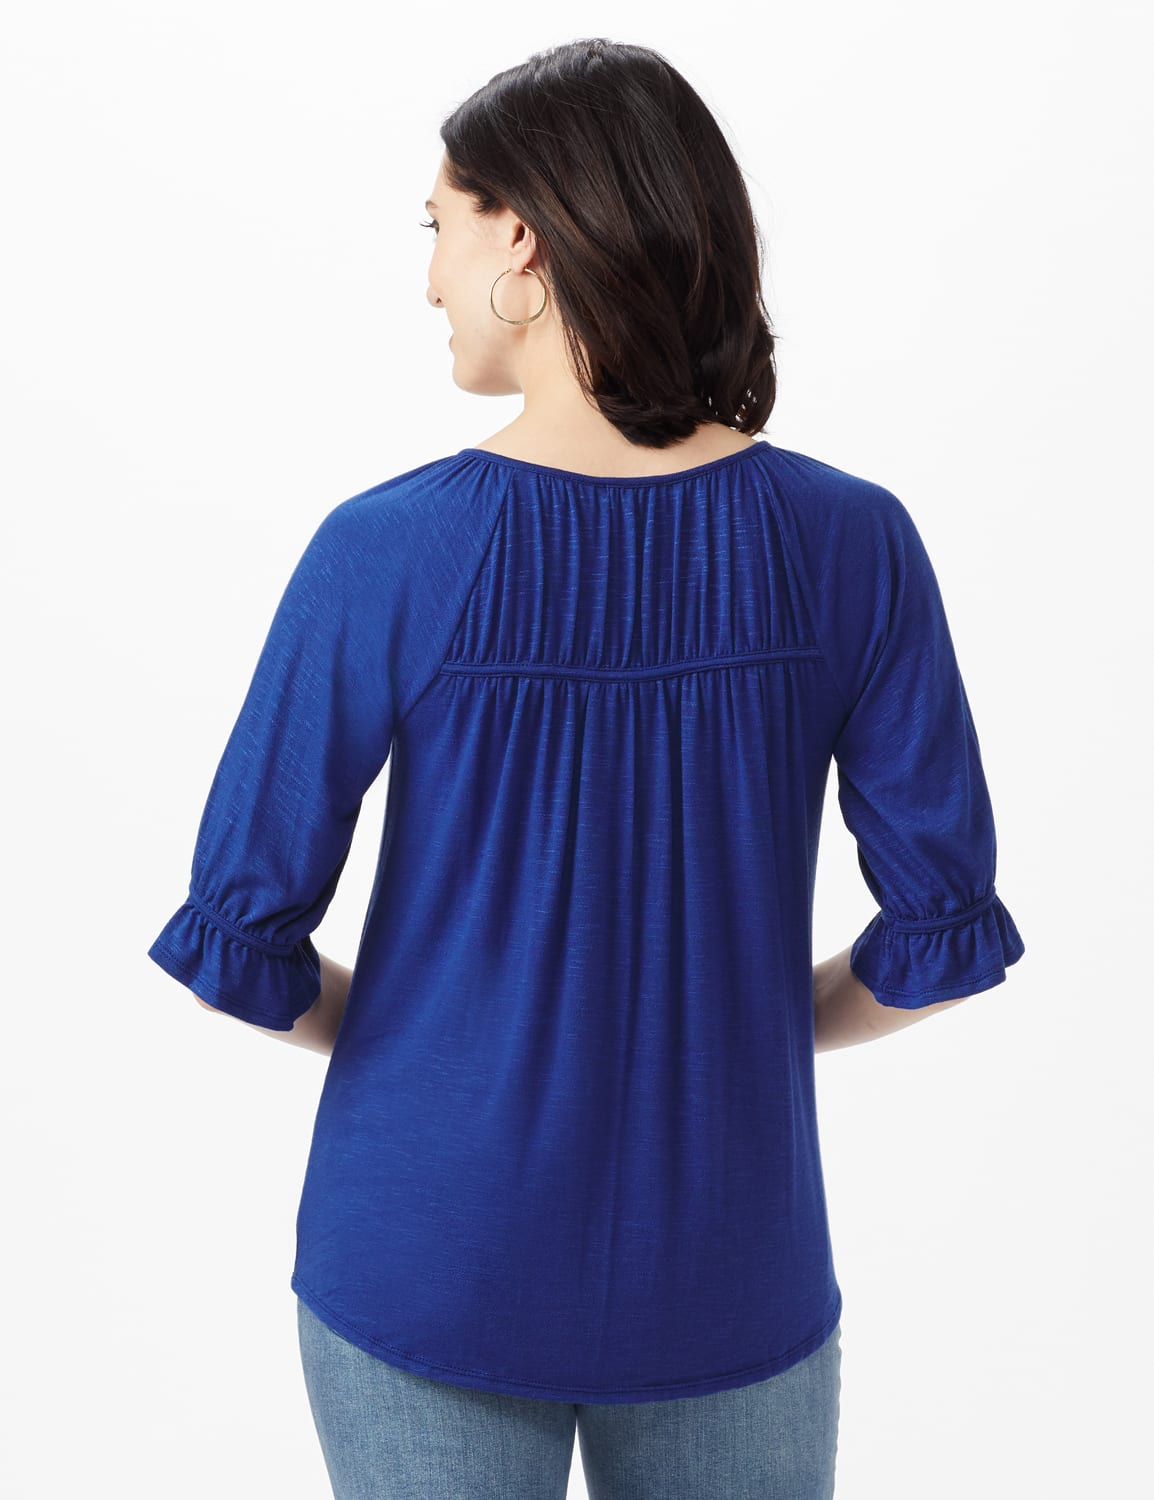 Ruffle Trim Peasant Knit Top - Misses - Blue - Back